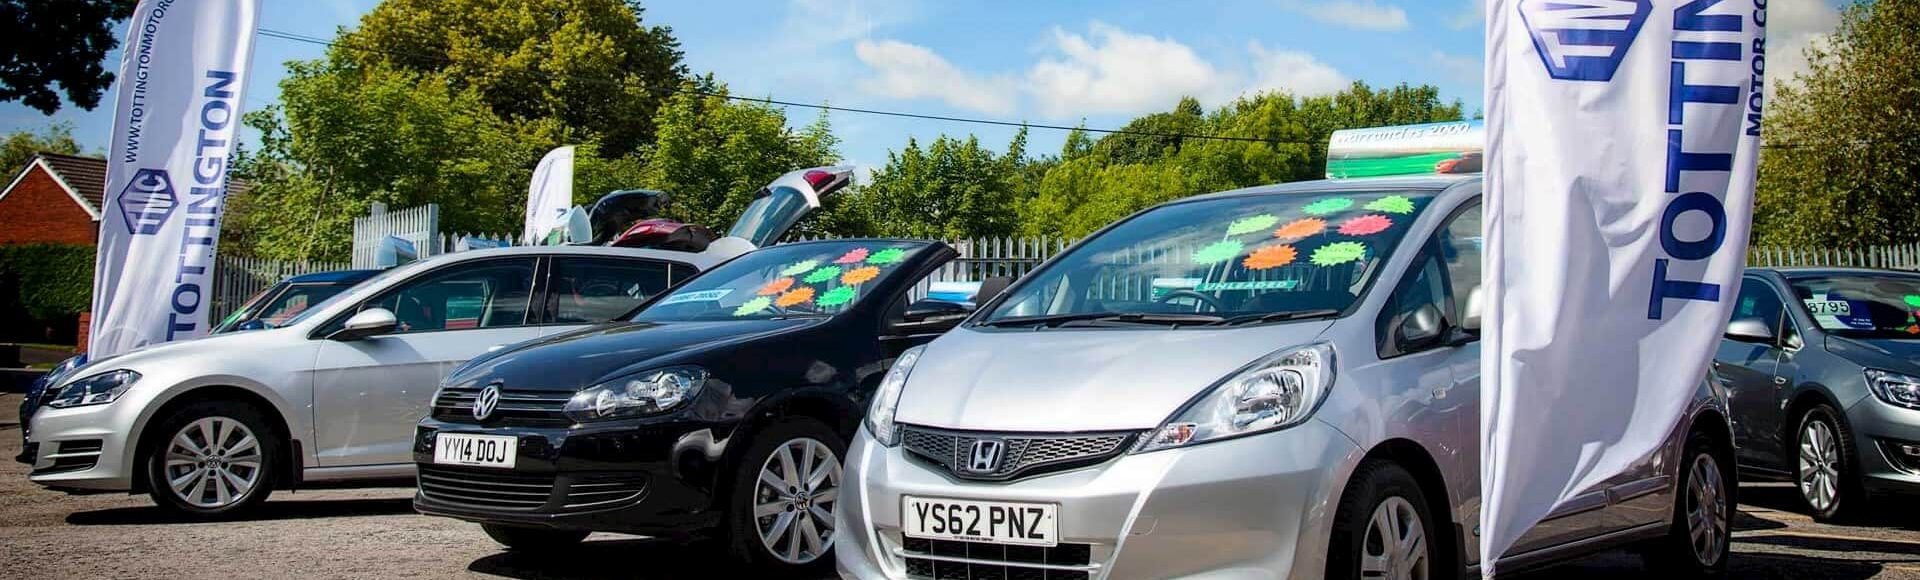 Used Cars for Sale in Bury, Bolton, Manchester & Lancashire